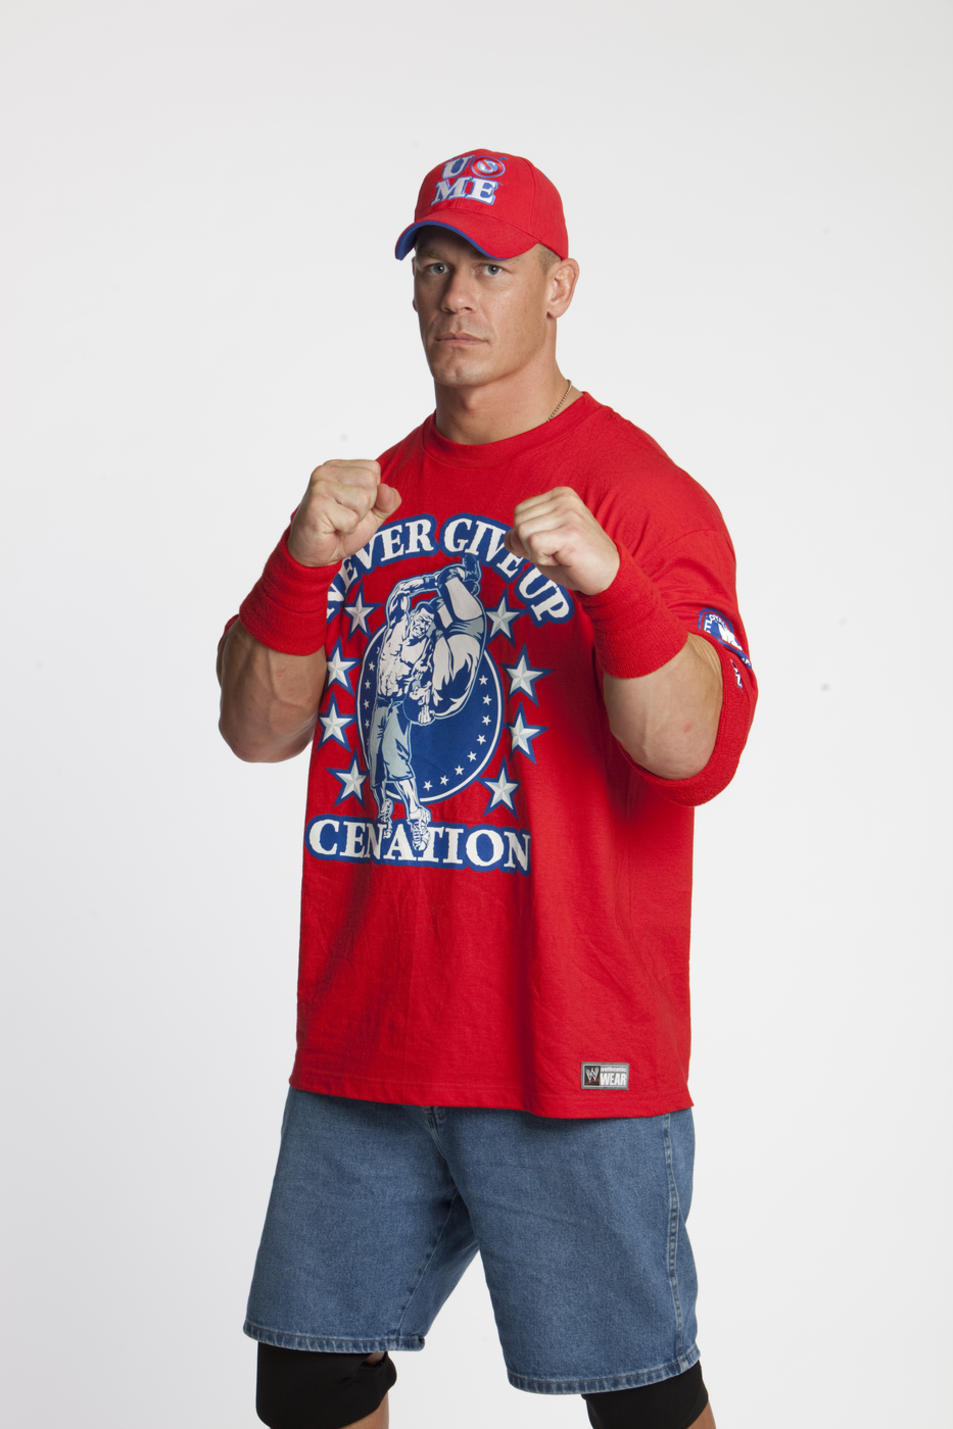 john cena images hq_john_cena hd wallpaper and background photos